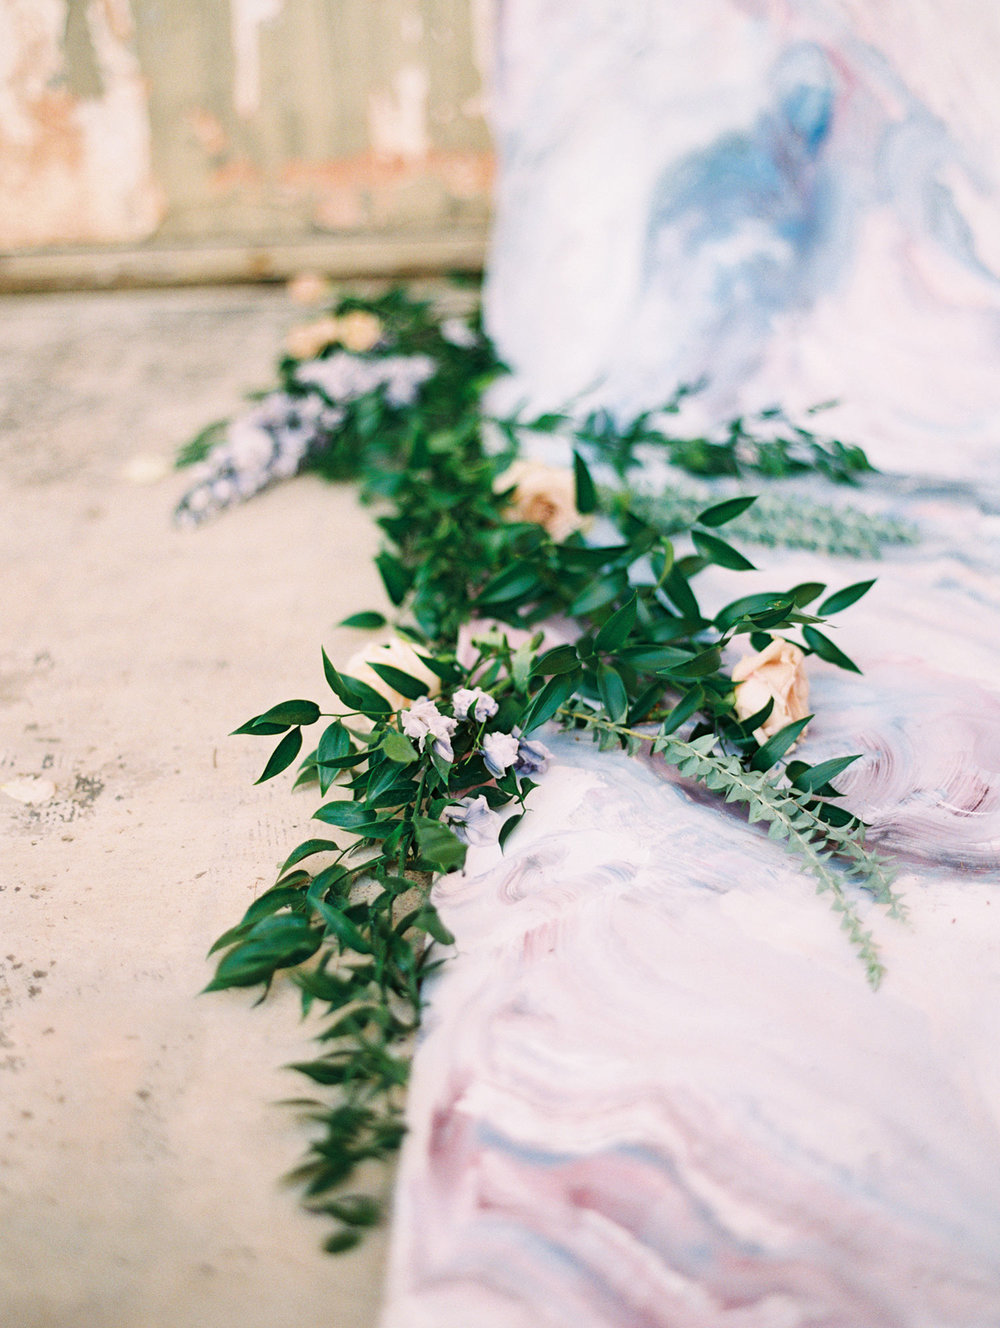 Greenery on wedding aisle with a marble runner